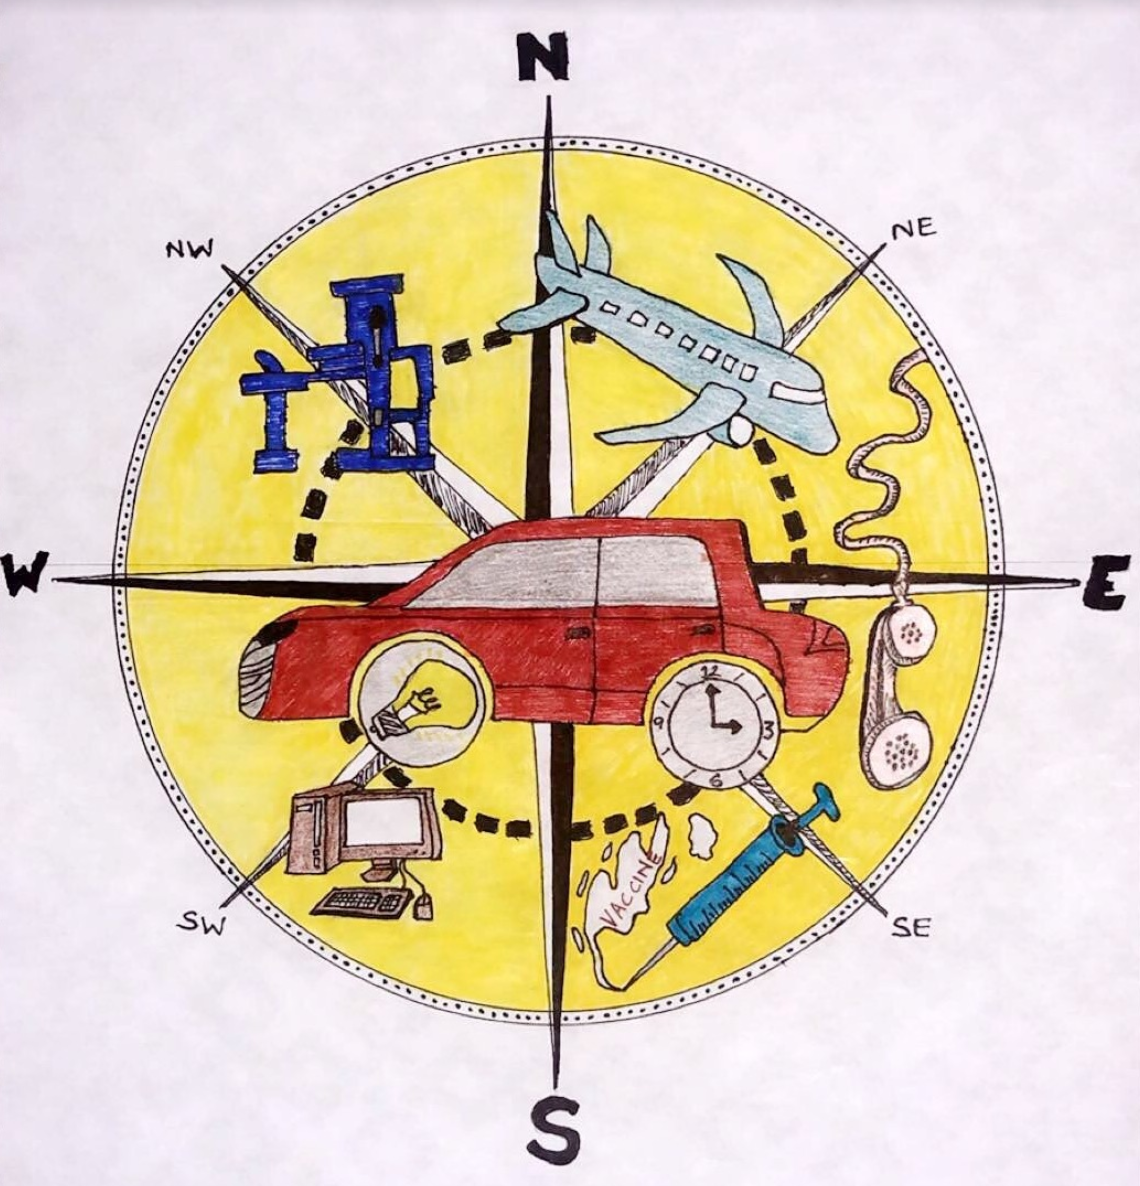 a compass with salient technology